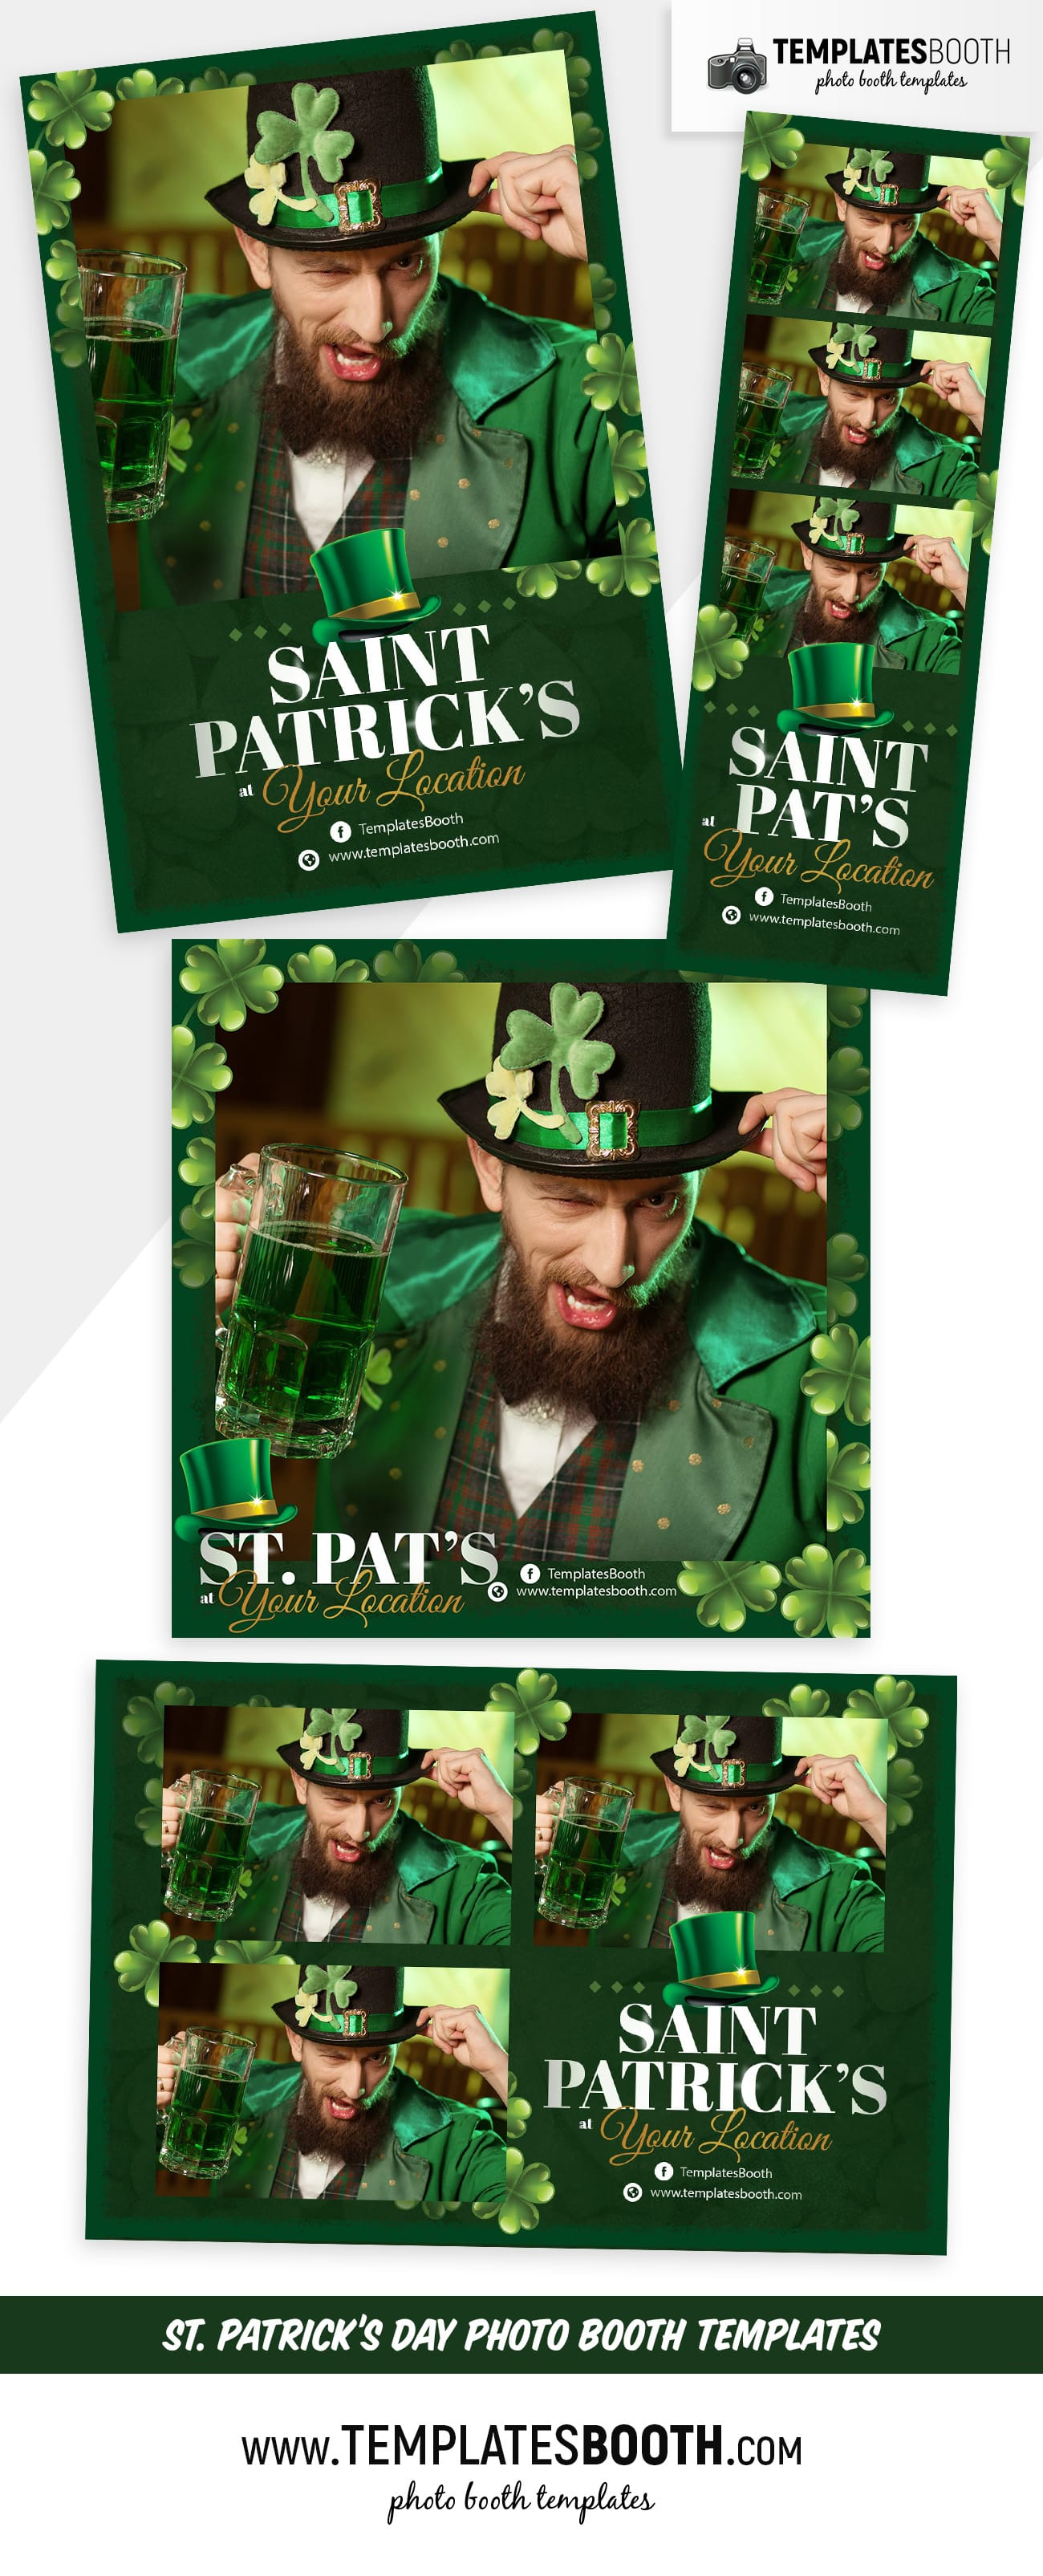 Saint Patrick's Day Photo Booth Template (full preview)